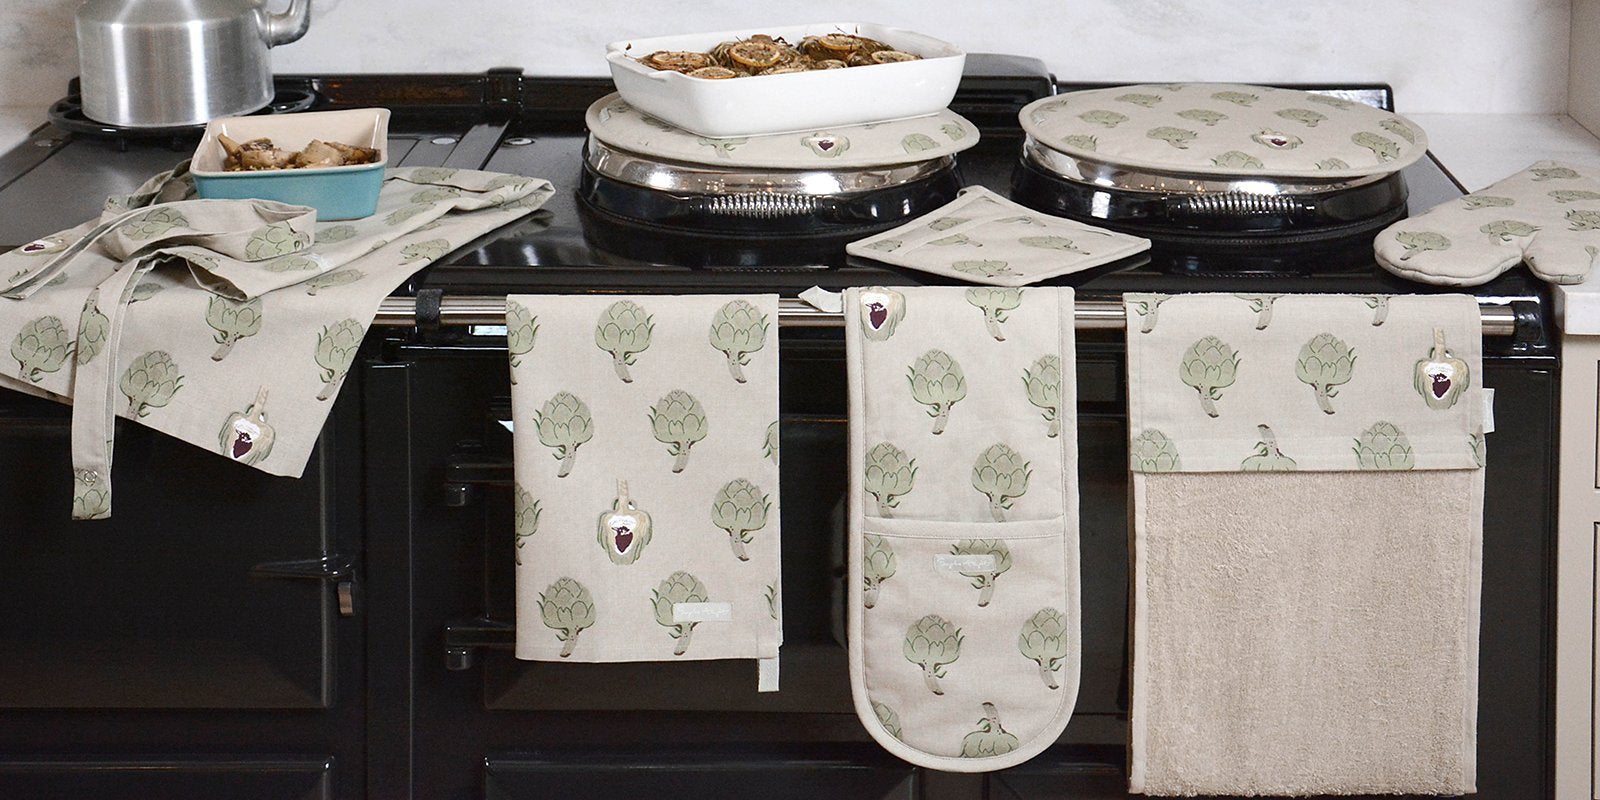 Artichoke Collection by Sophie Allport